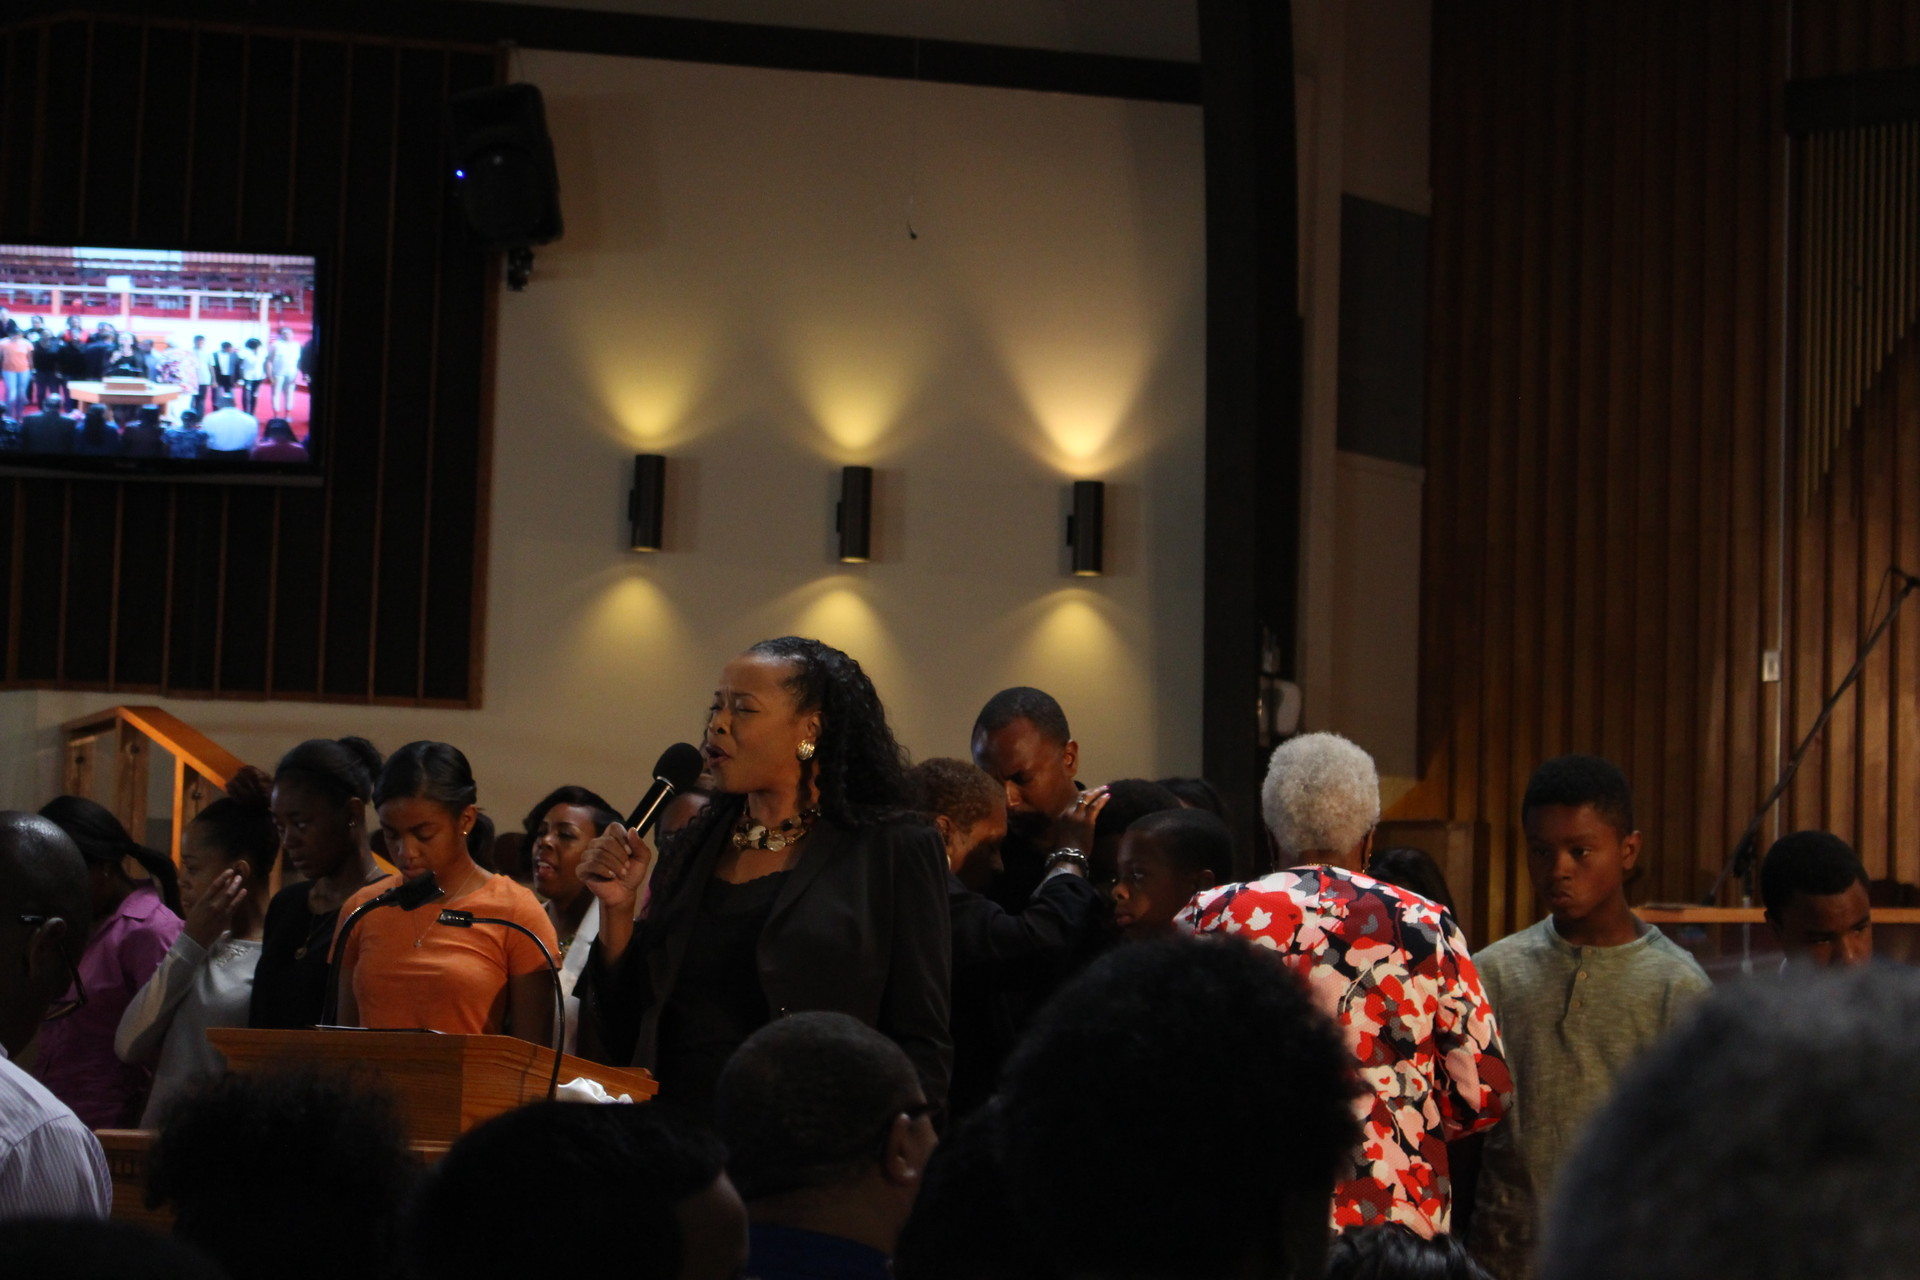 The Rev. Jacqueline Thompson leads prayers at the Allen Temple Baptist Church for those killed during shootings last week by and against police. (Farida Jhabvala Romero/KQED)